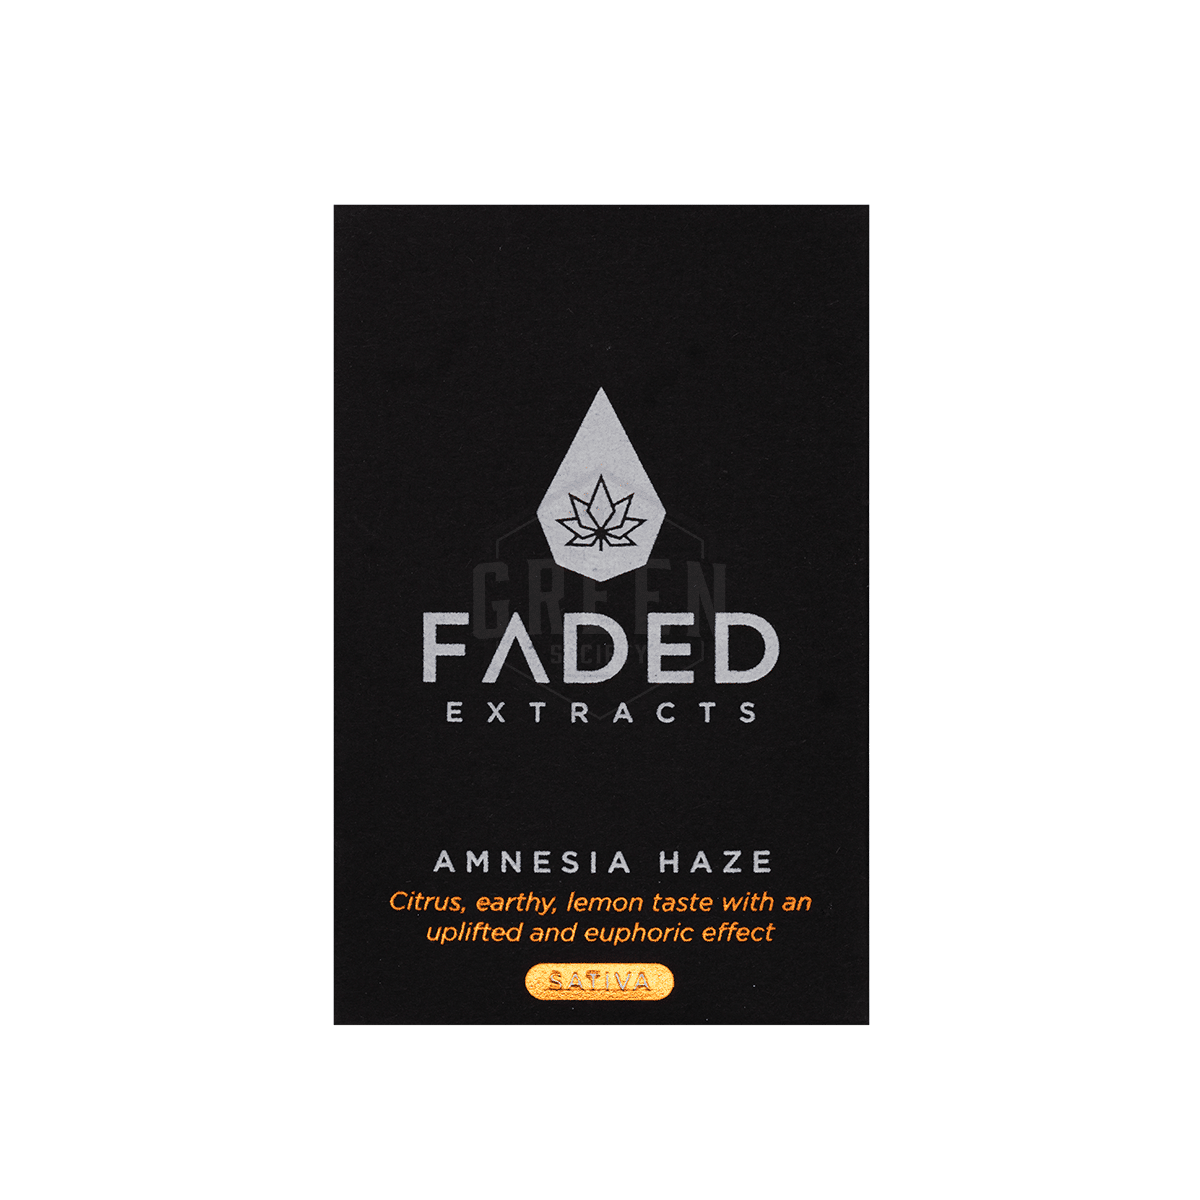 Amnesia Haze Shatter by Faded Extracts by Green Society - Image © 2018 Green Society. All Rights Reserved.